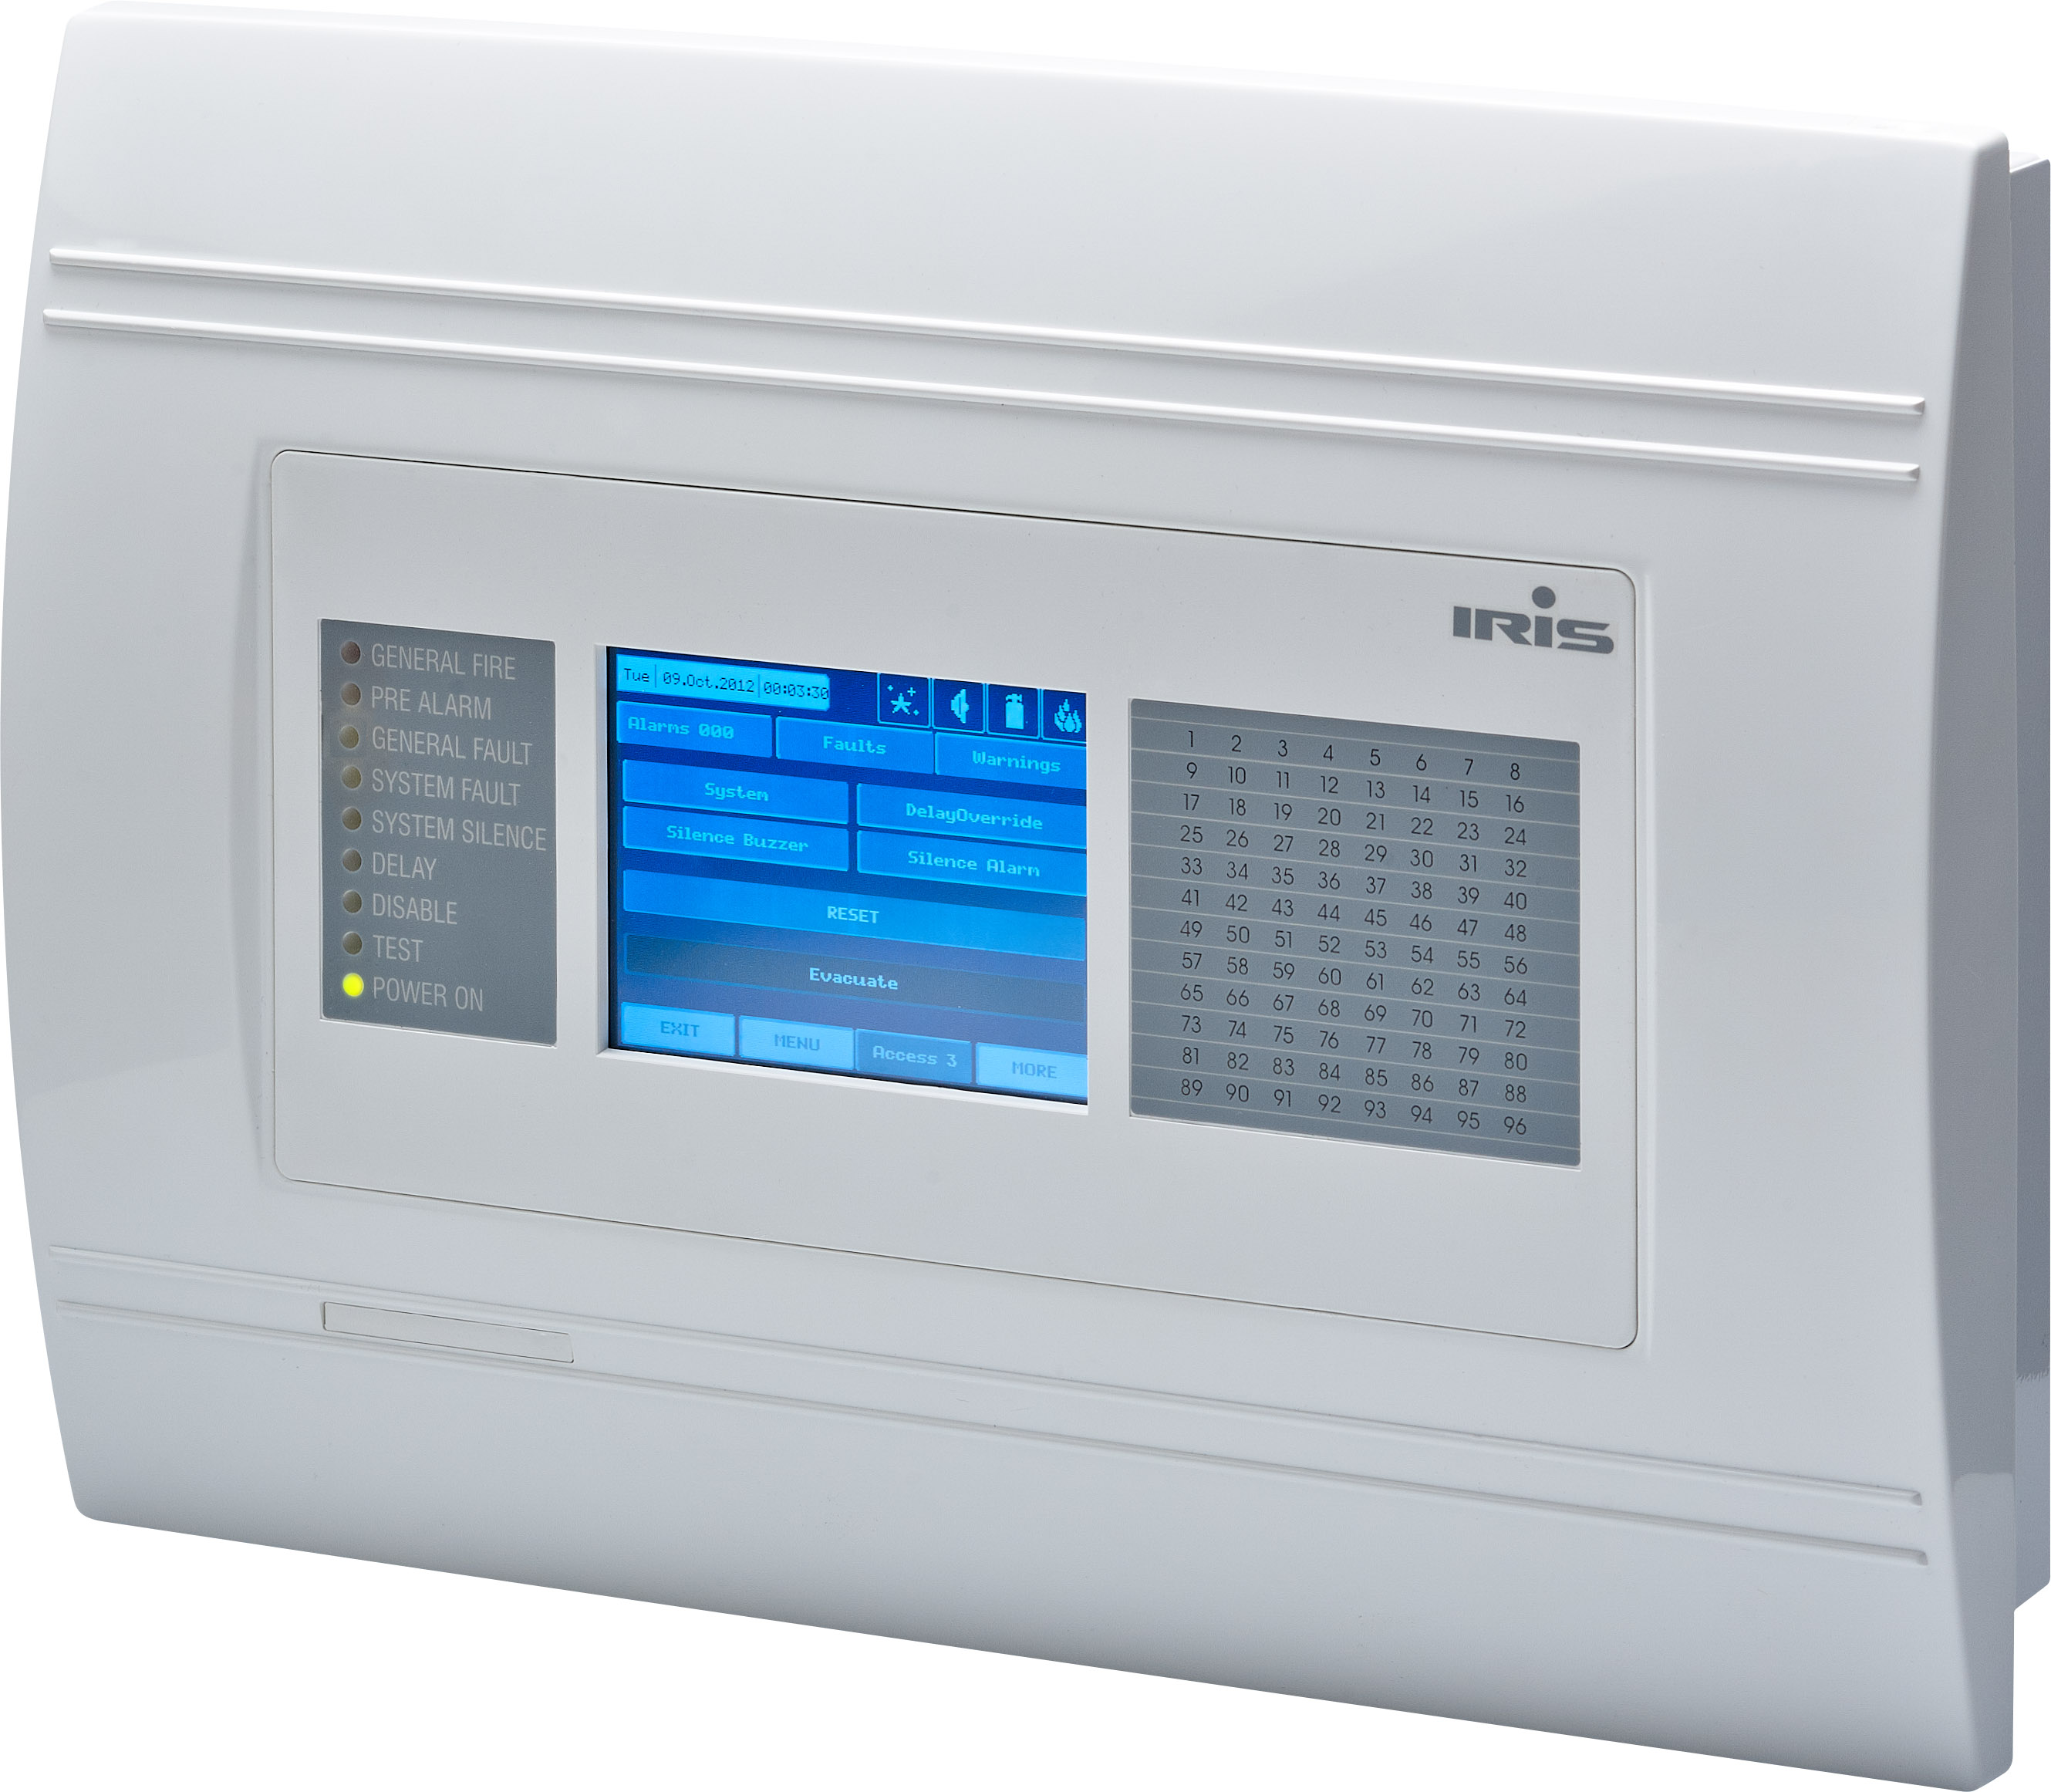 IRIS Addressable Fire Alarm Panel - Teletek electronics